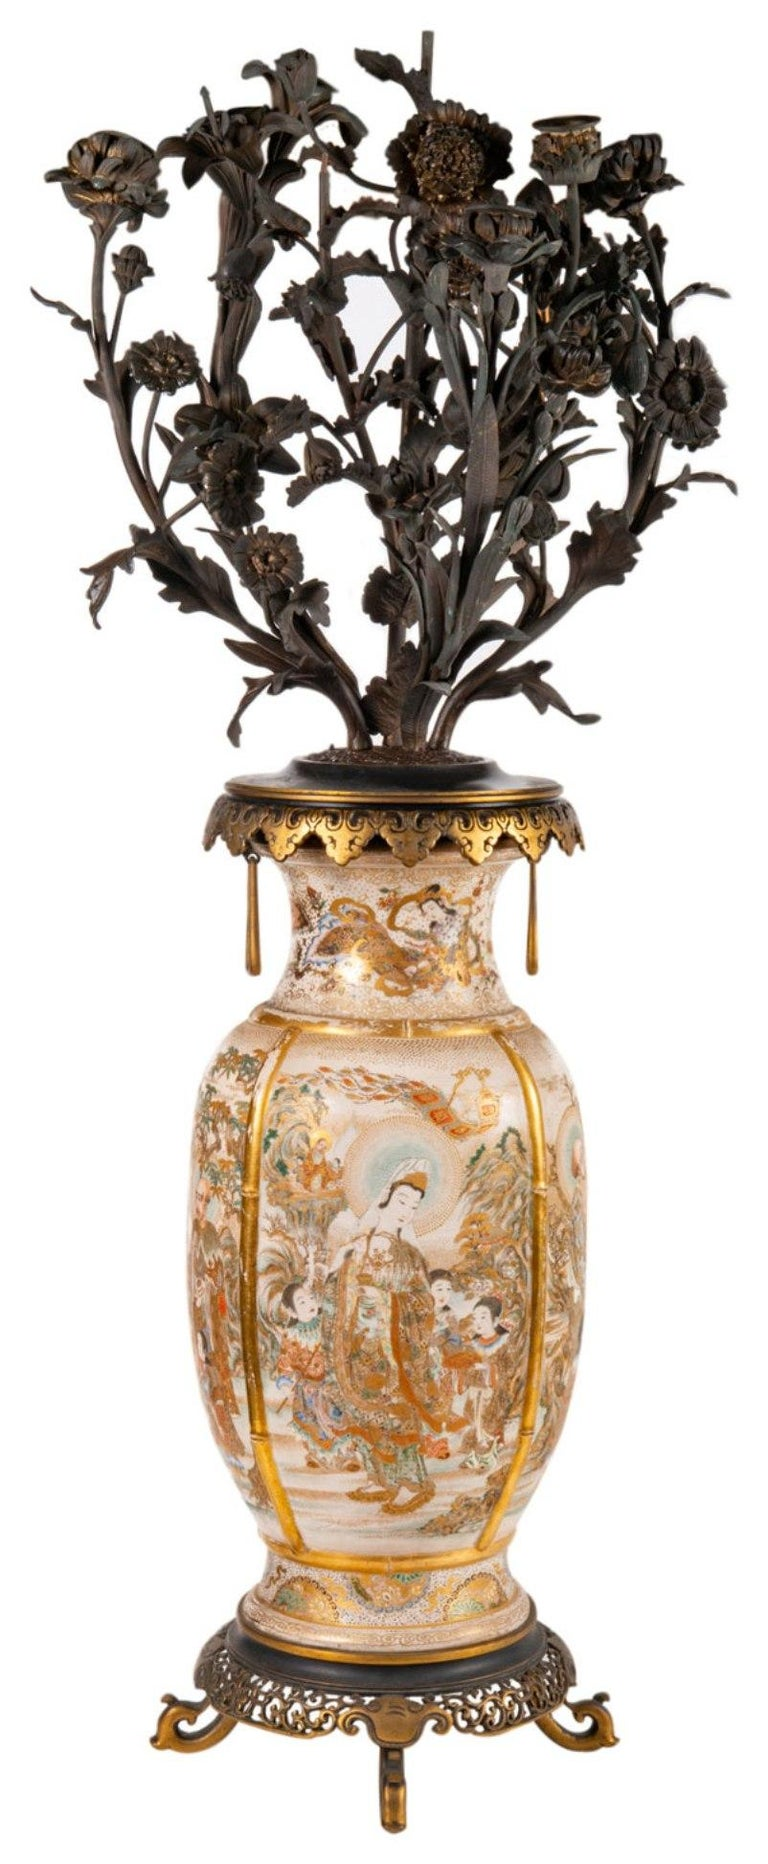 A fine quality pair of late 19th century Japanese Satsuma vases / candelabra. Each having wonderful bronze flower and leaf six branch candelabra, gilded ormolu scalloped rims with handles beneath, reclining Geisha girls around the necks, classical